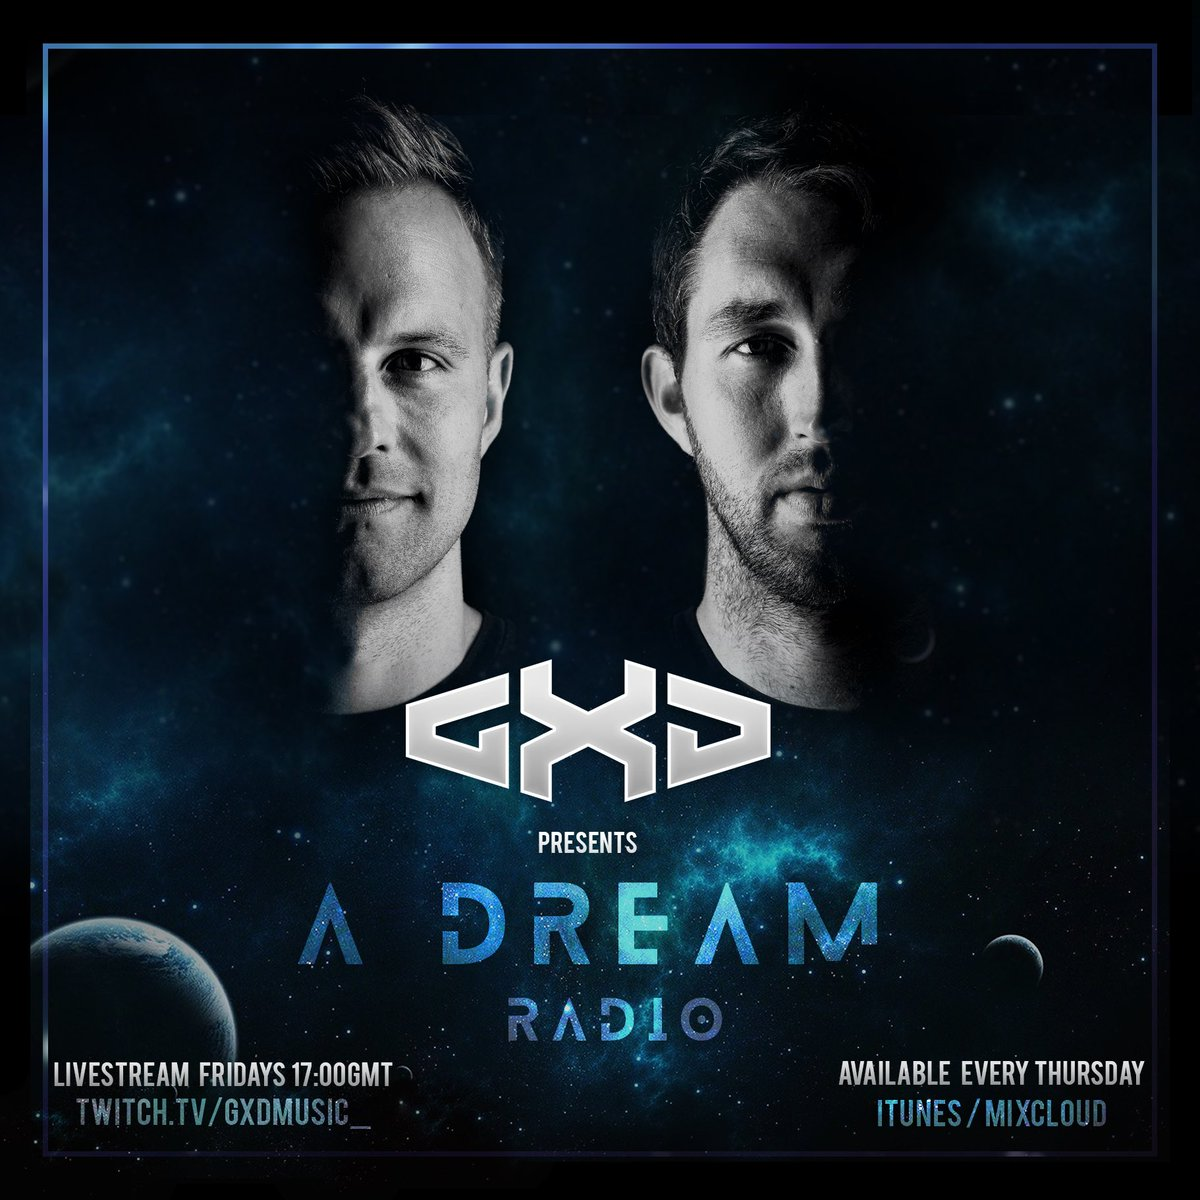 A Dream Radio 70 uploaded to iTunes & Mixcloud - https://t.co/2tRV7pOQcJ 😁  Tonight live on https://t.co/5k80pPbzOu at 18:00BST we do Episode 71 🙌🔥 . #trancefamily #gxd #avarecordings #asot #trancepodcast #trancelivestream #twitch #melodichouse #vocaltrance #uplifitingtrance https://t.co/lFPMwvxPvo